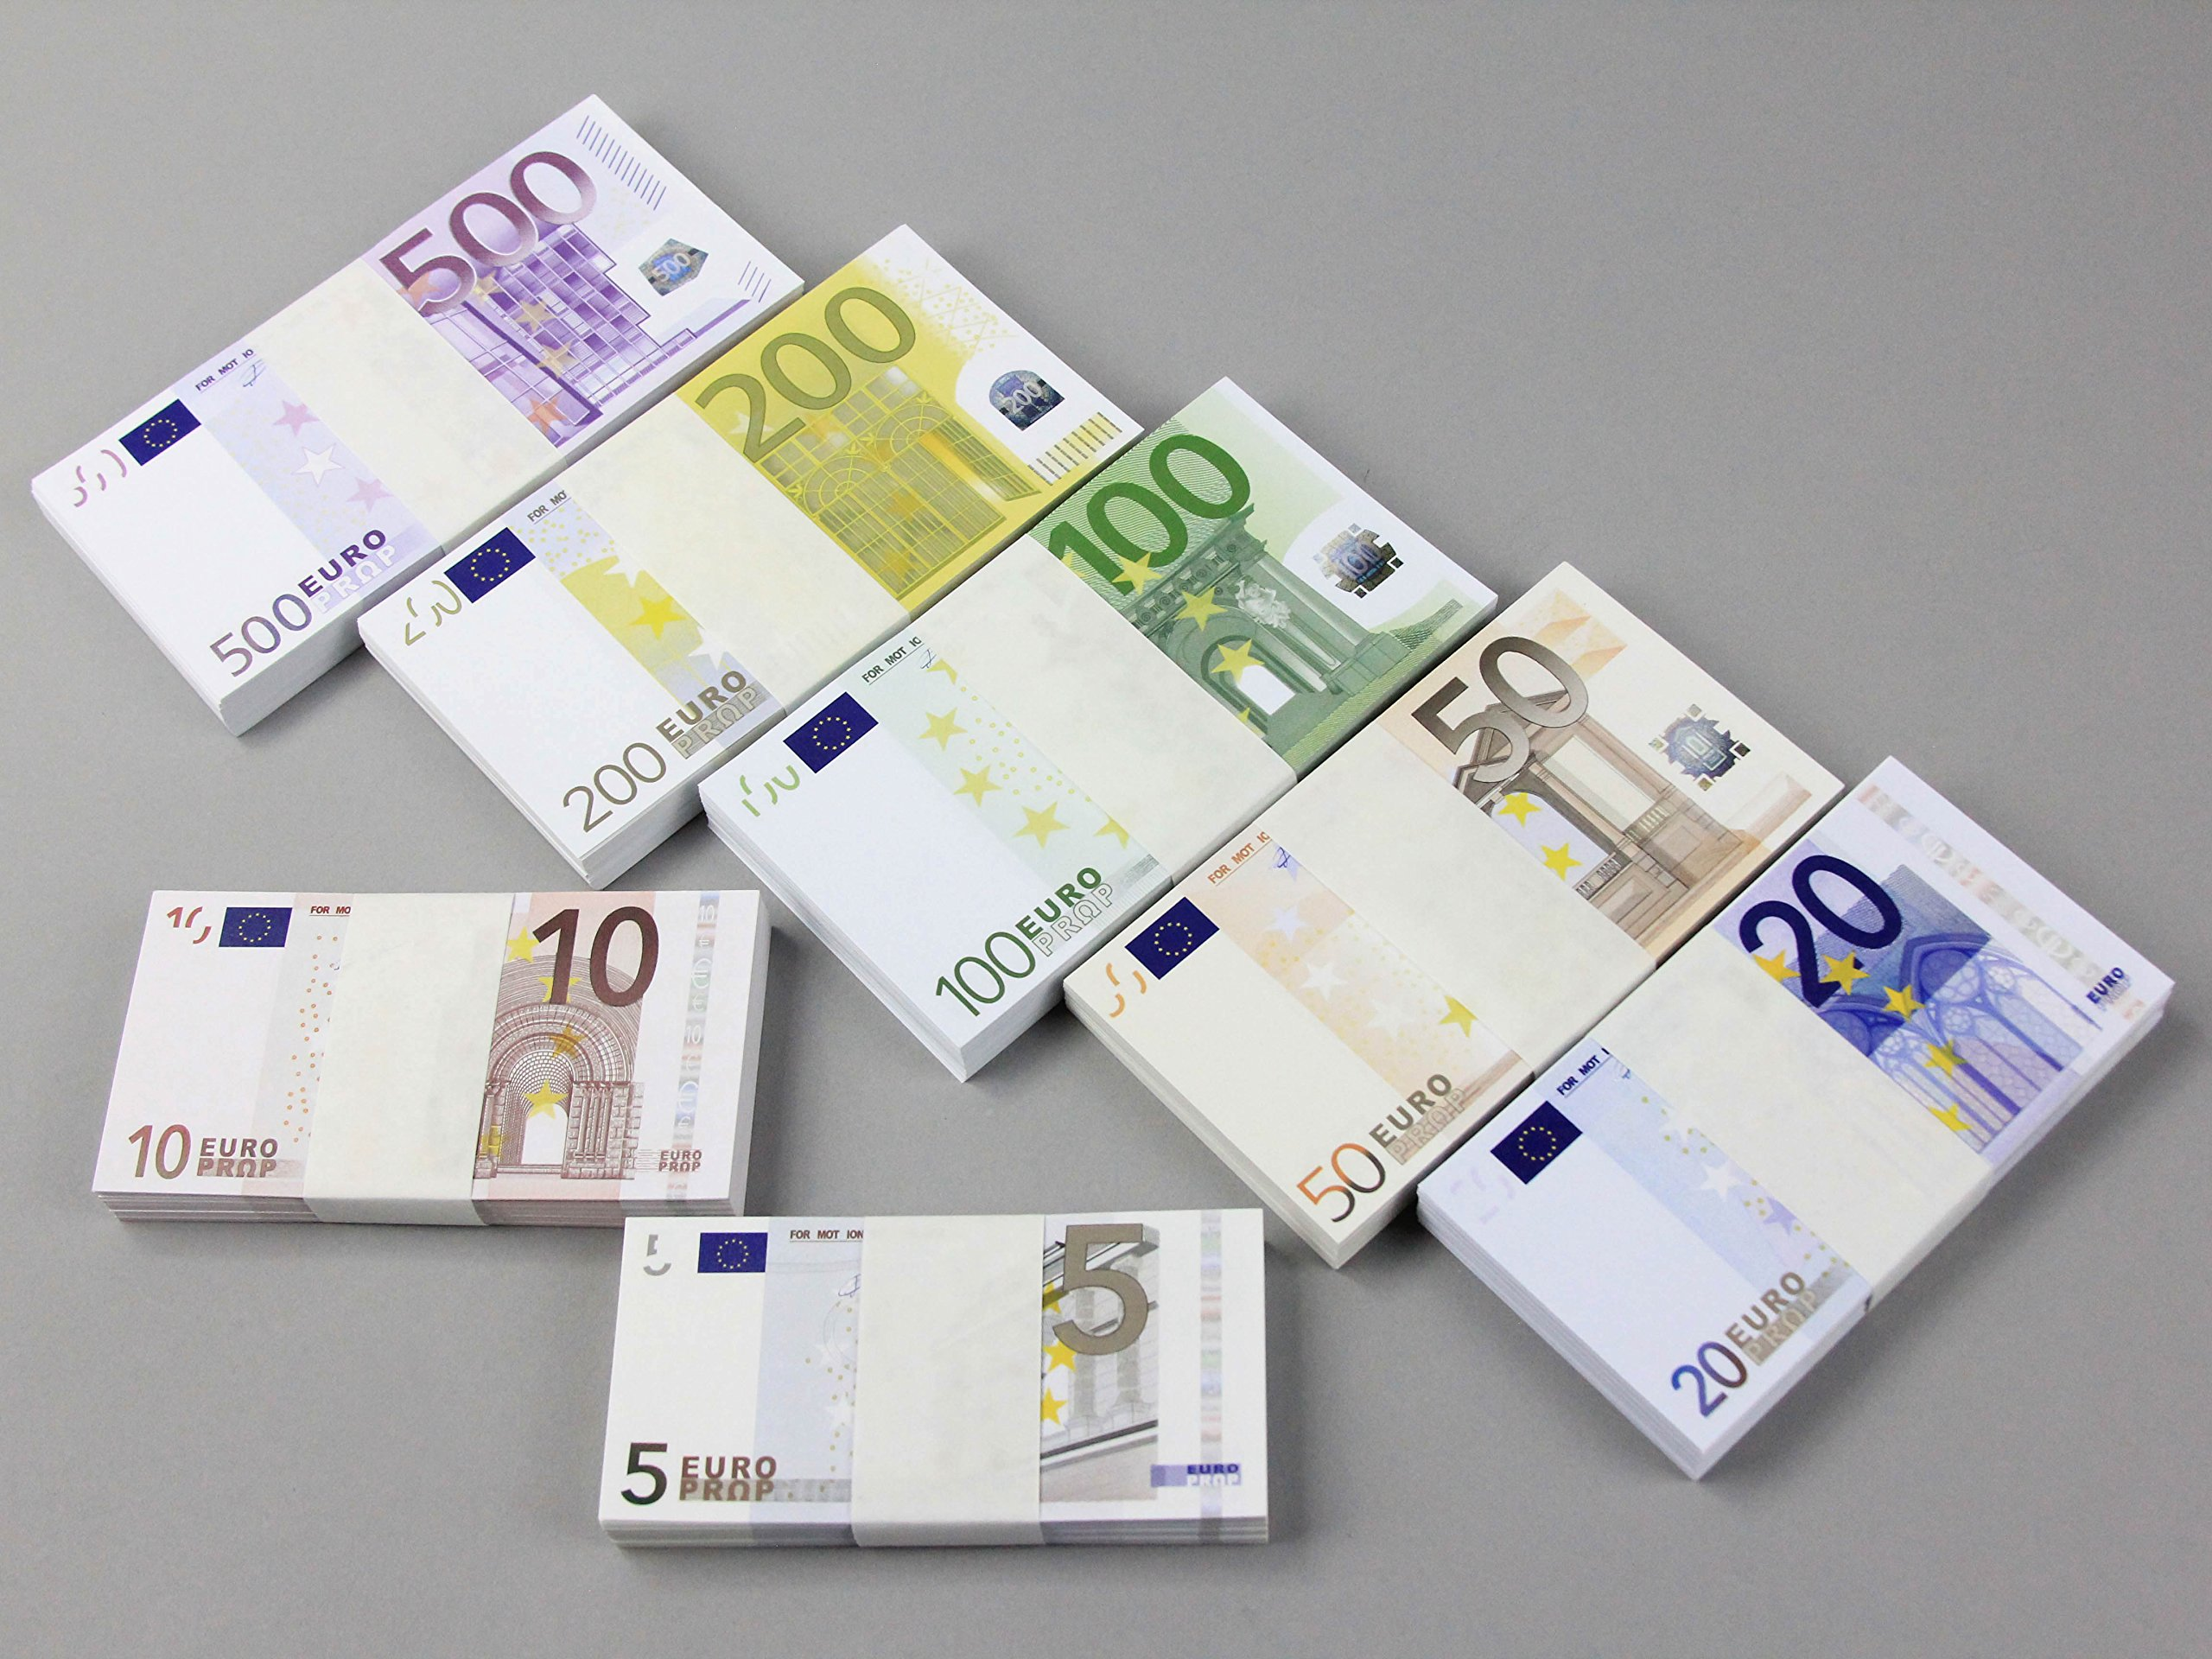 Euros ALL DENOMINATIONS Full Print Copy Double Sided Prop Money Pack for Movie, TV, Videos, Advertising & Novelty